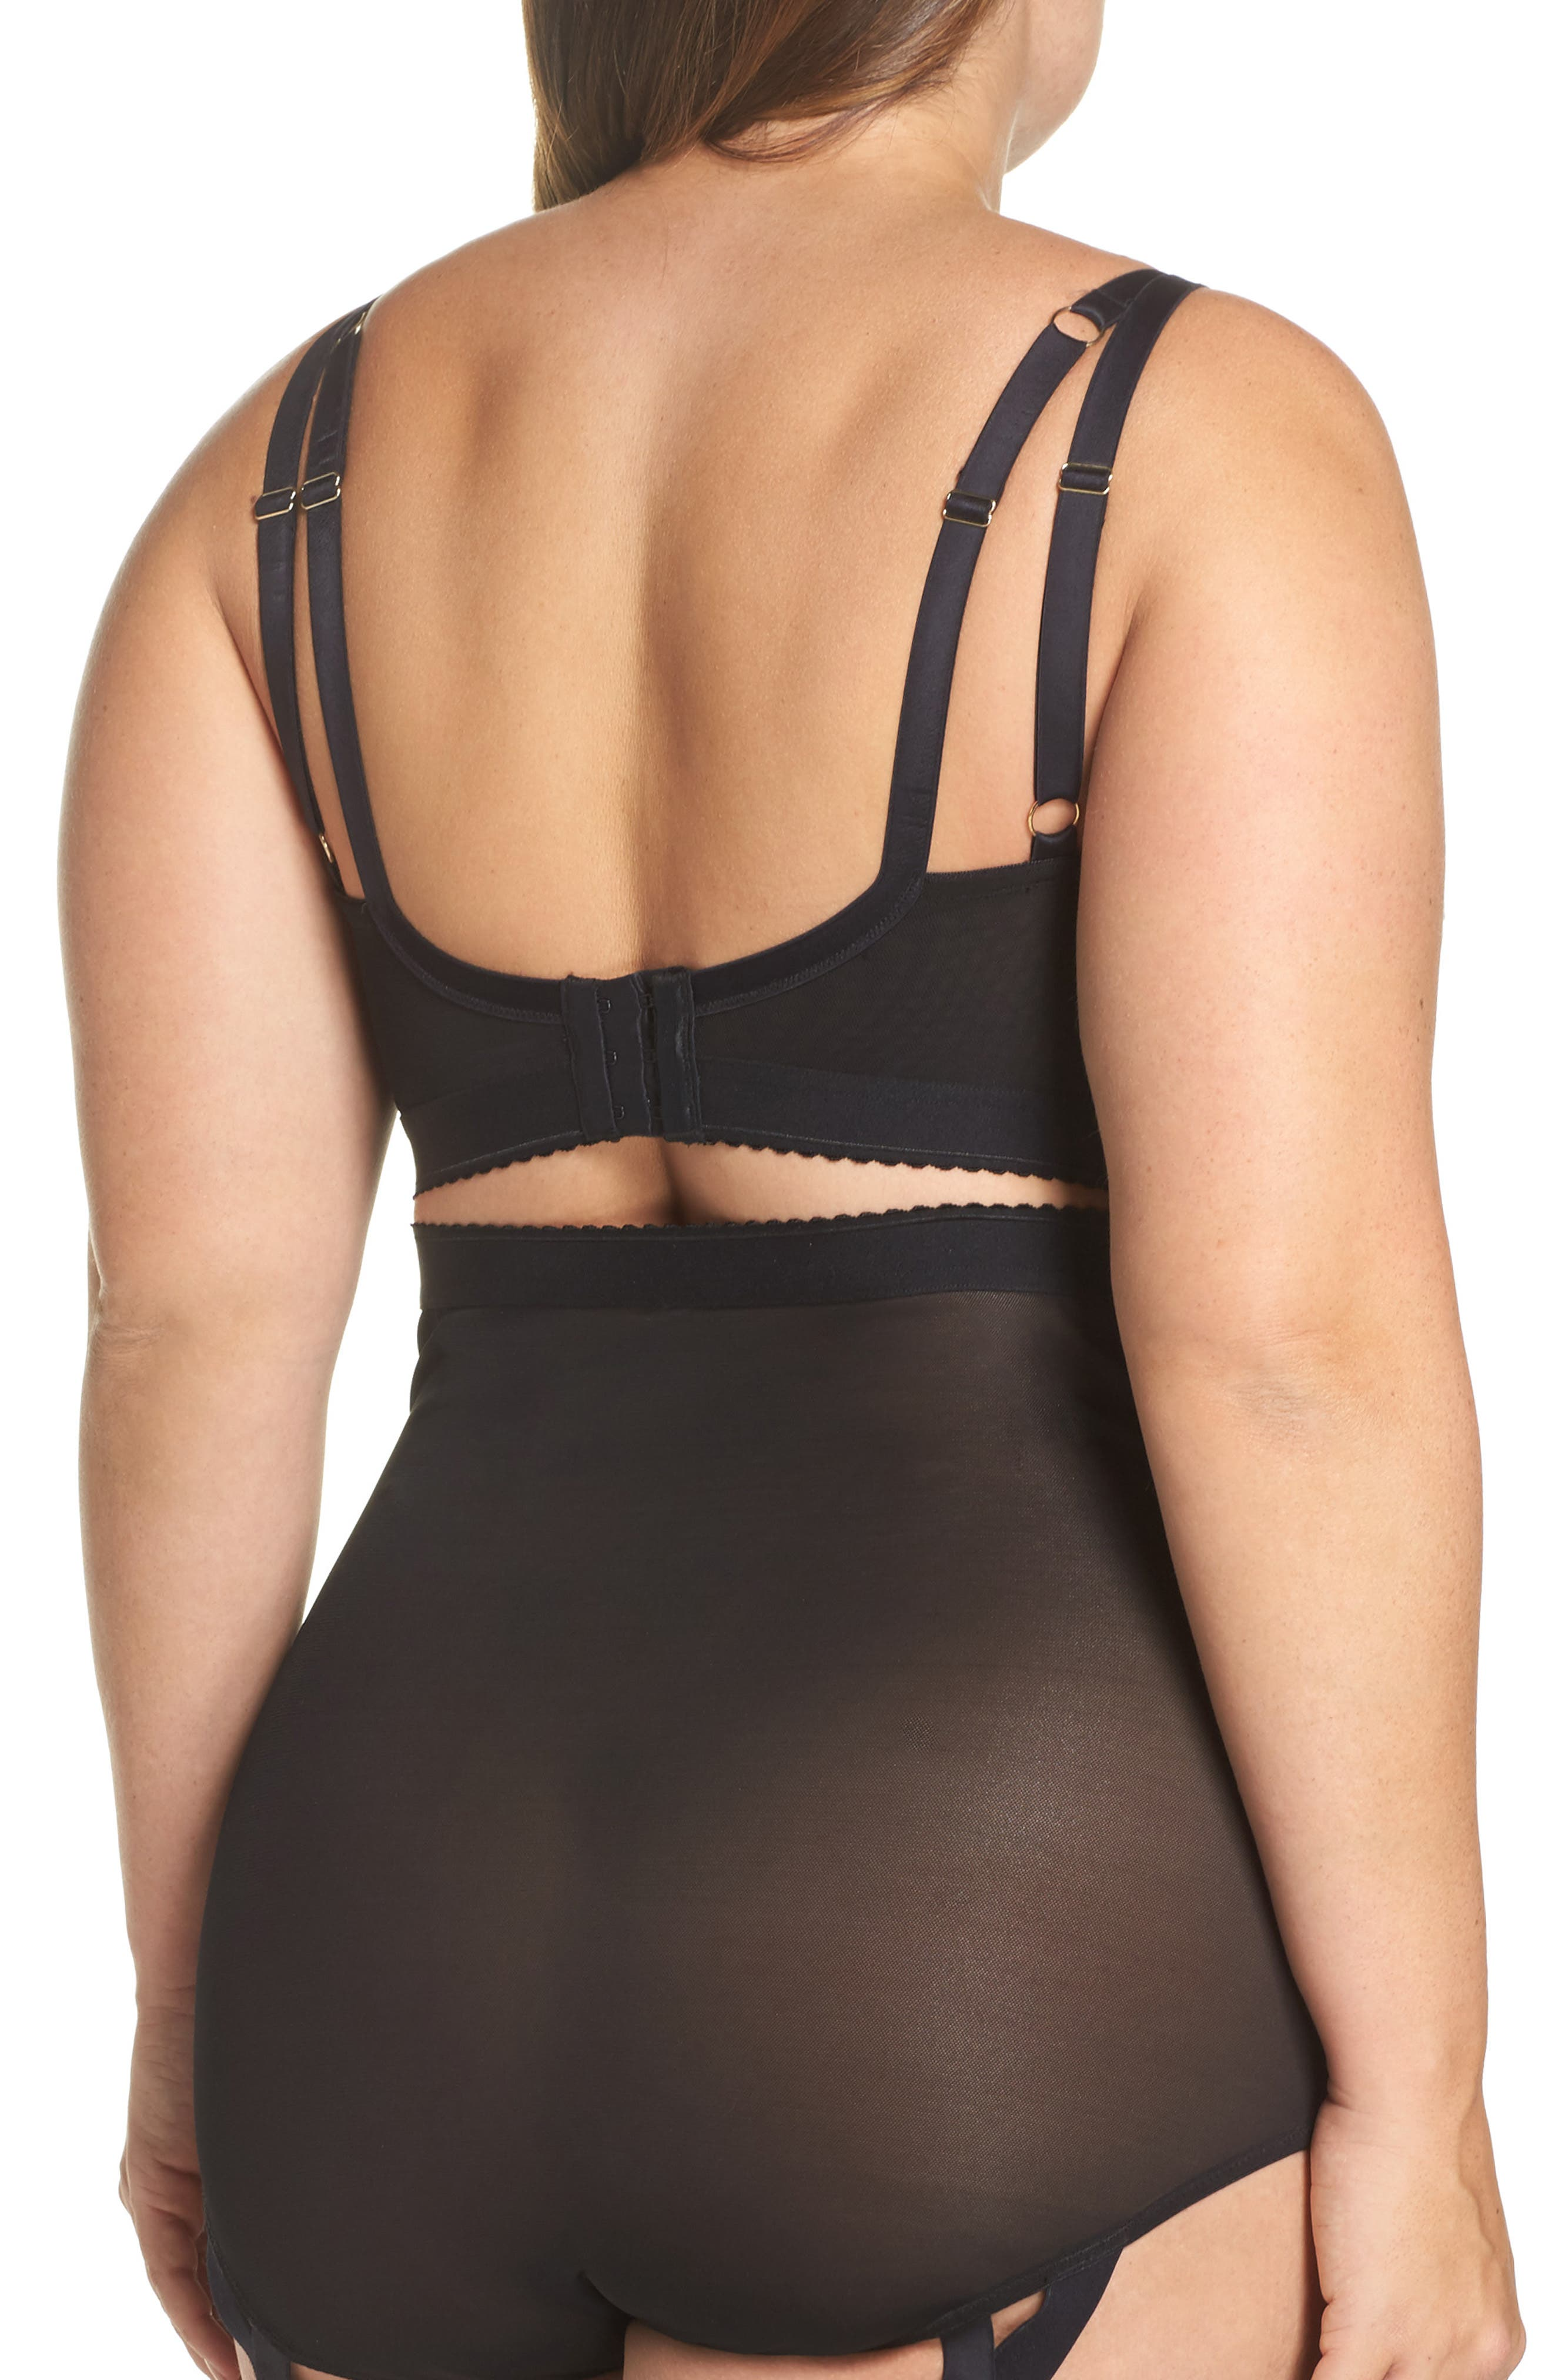 Playful Promies Candace Noir Strappy Underwire Bra,                             Alternate thumbnail 2, color,